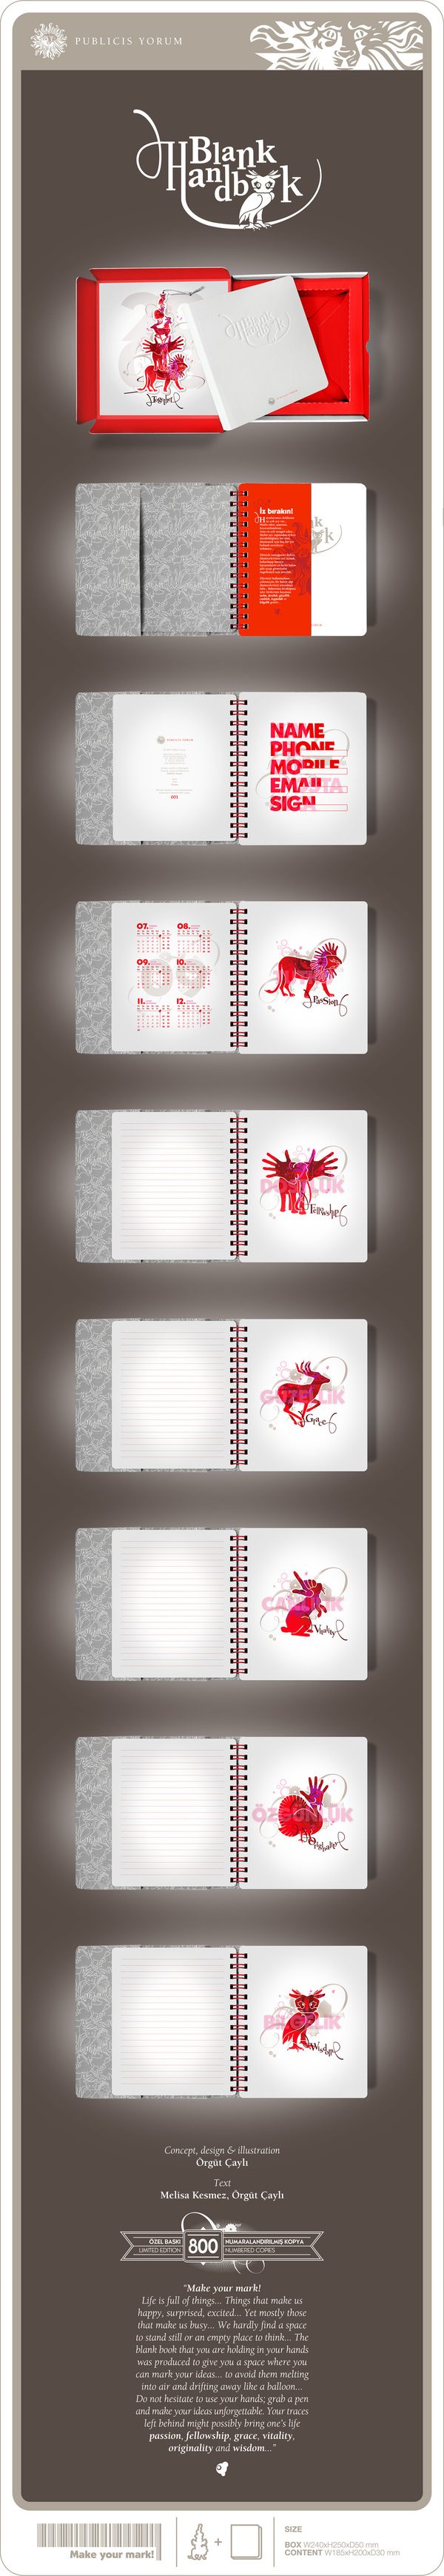 Notepad beautifully designed to appreciate